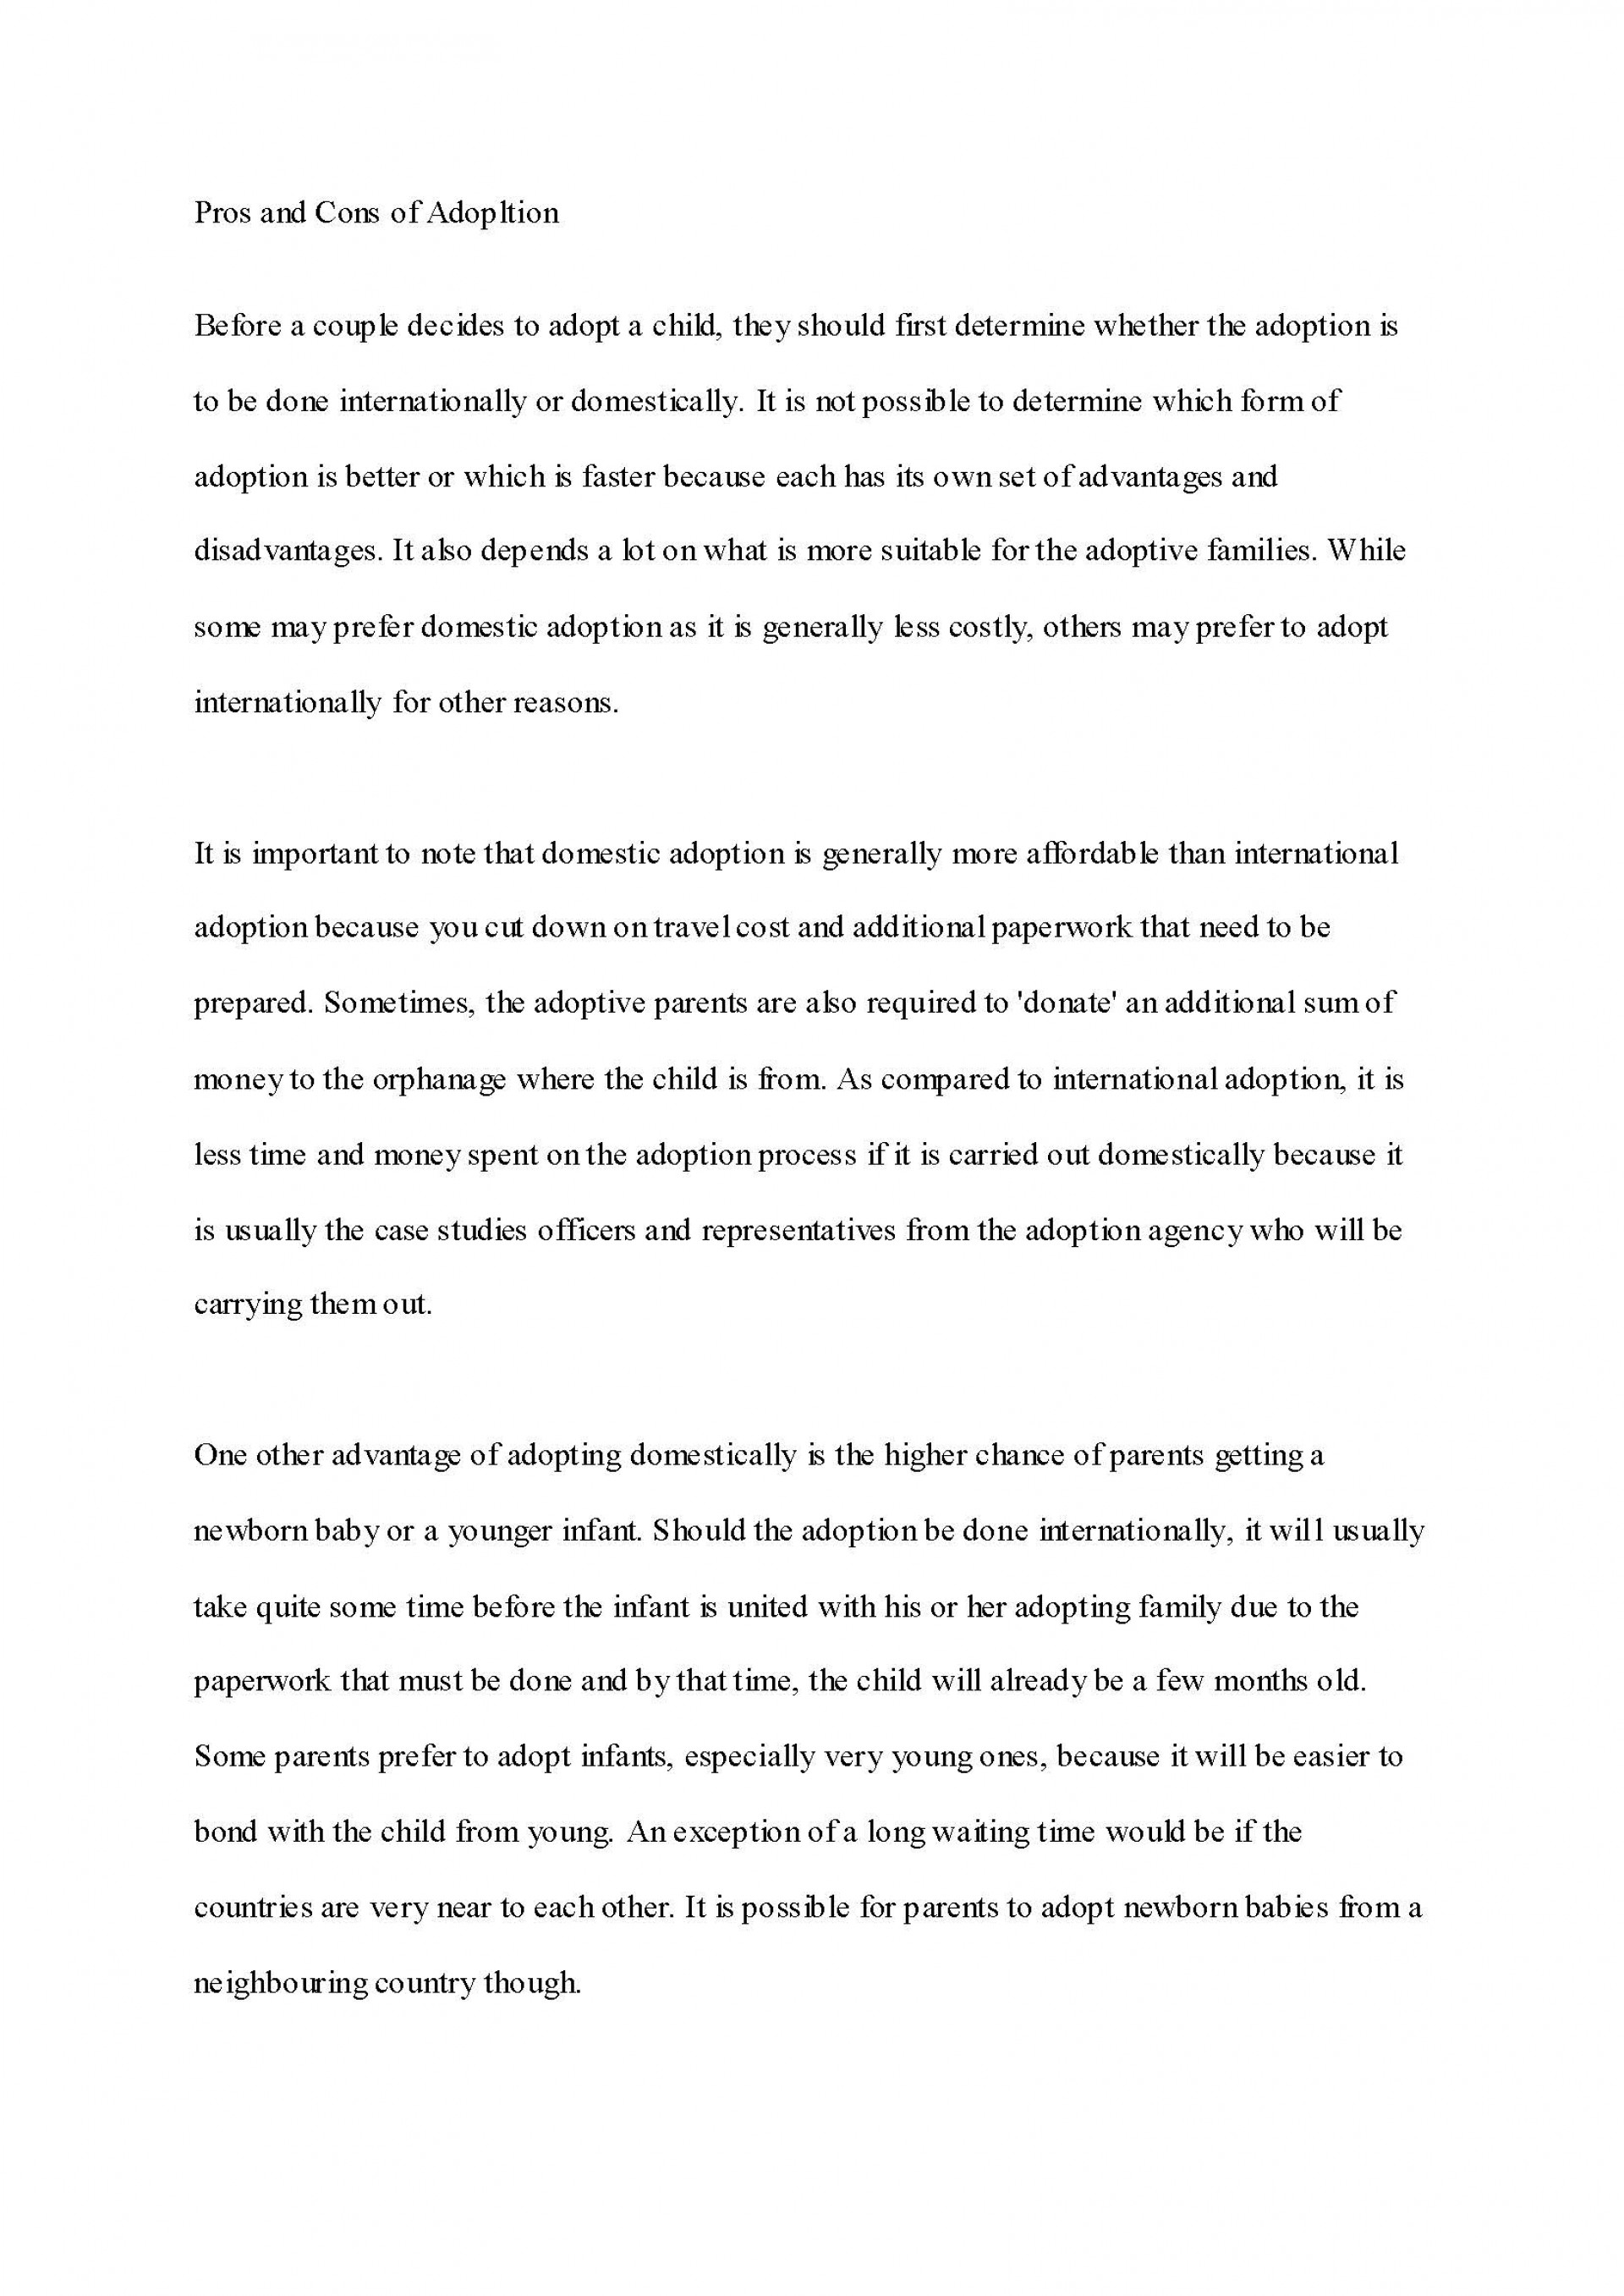 017 Research Essays Adoption Sample Unusual Essay Examples Paper Format Pdf Papers Tagalog 1920